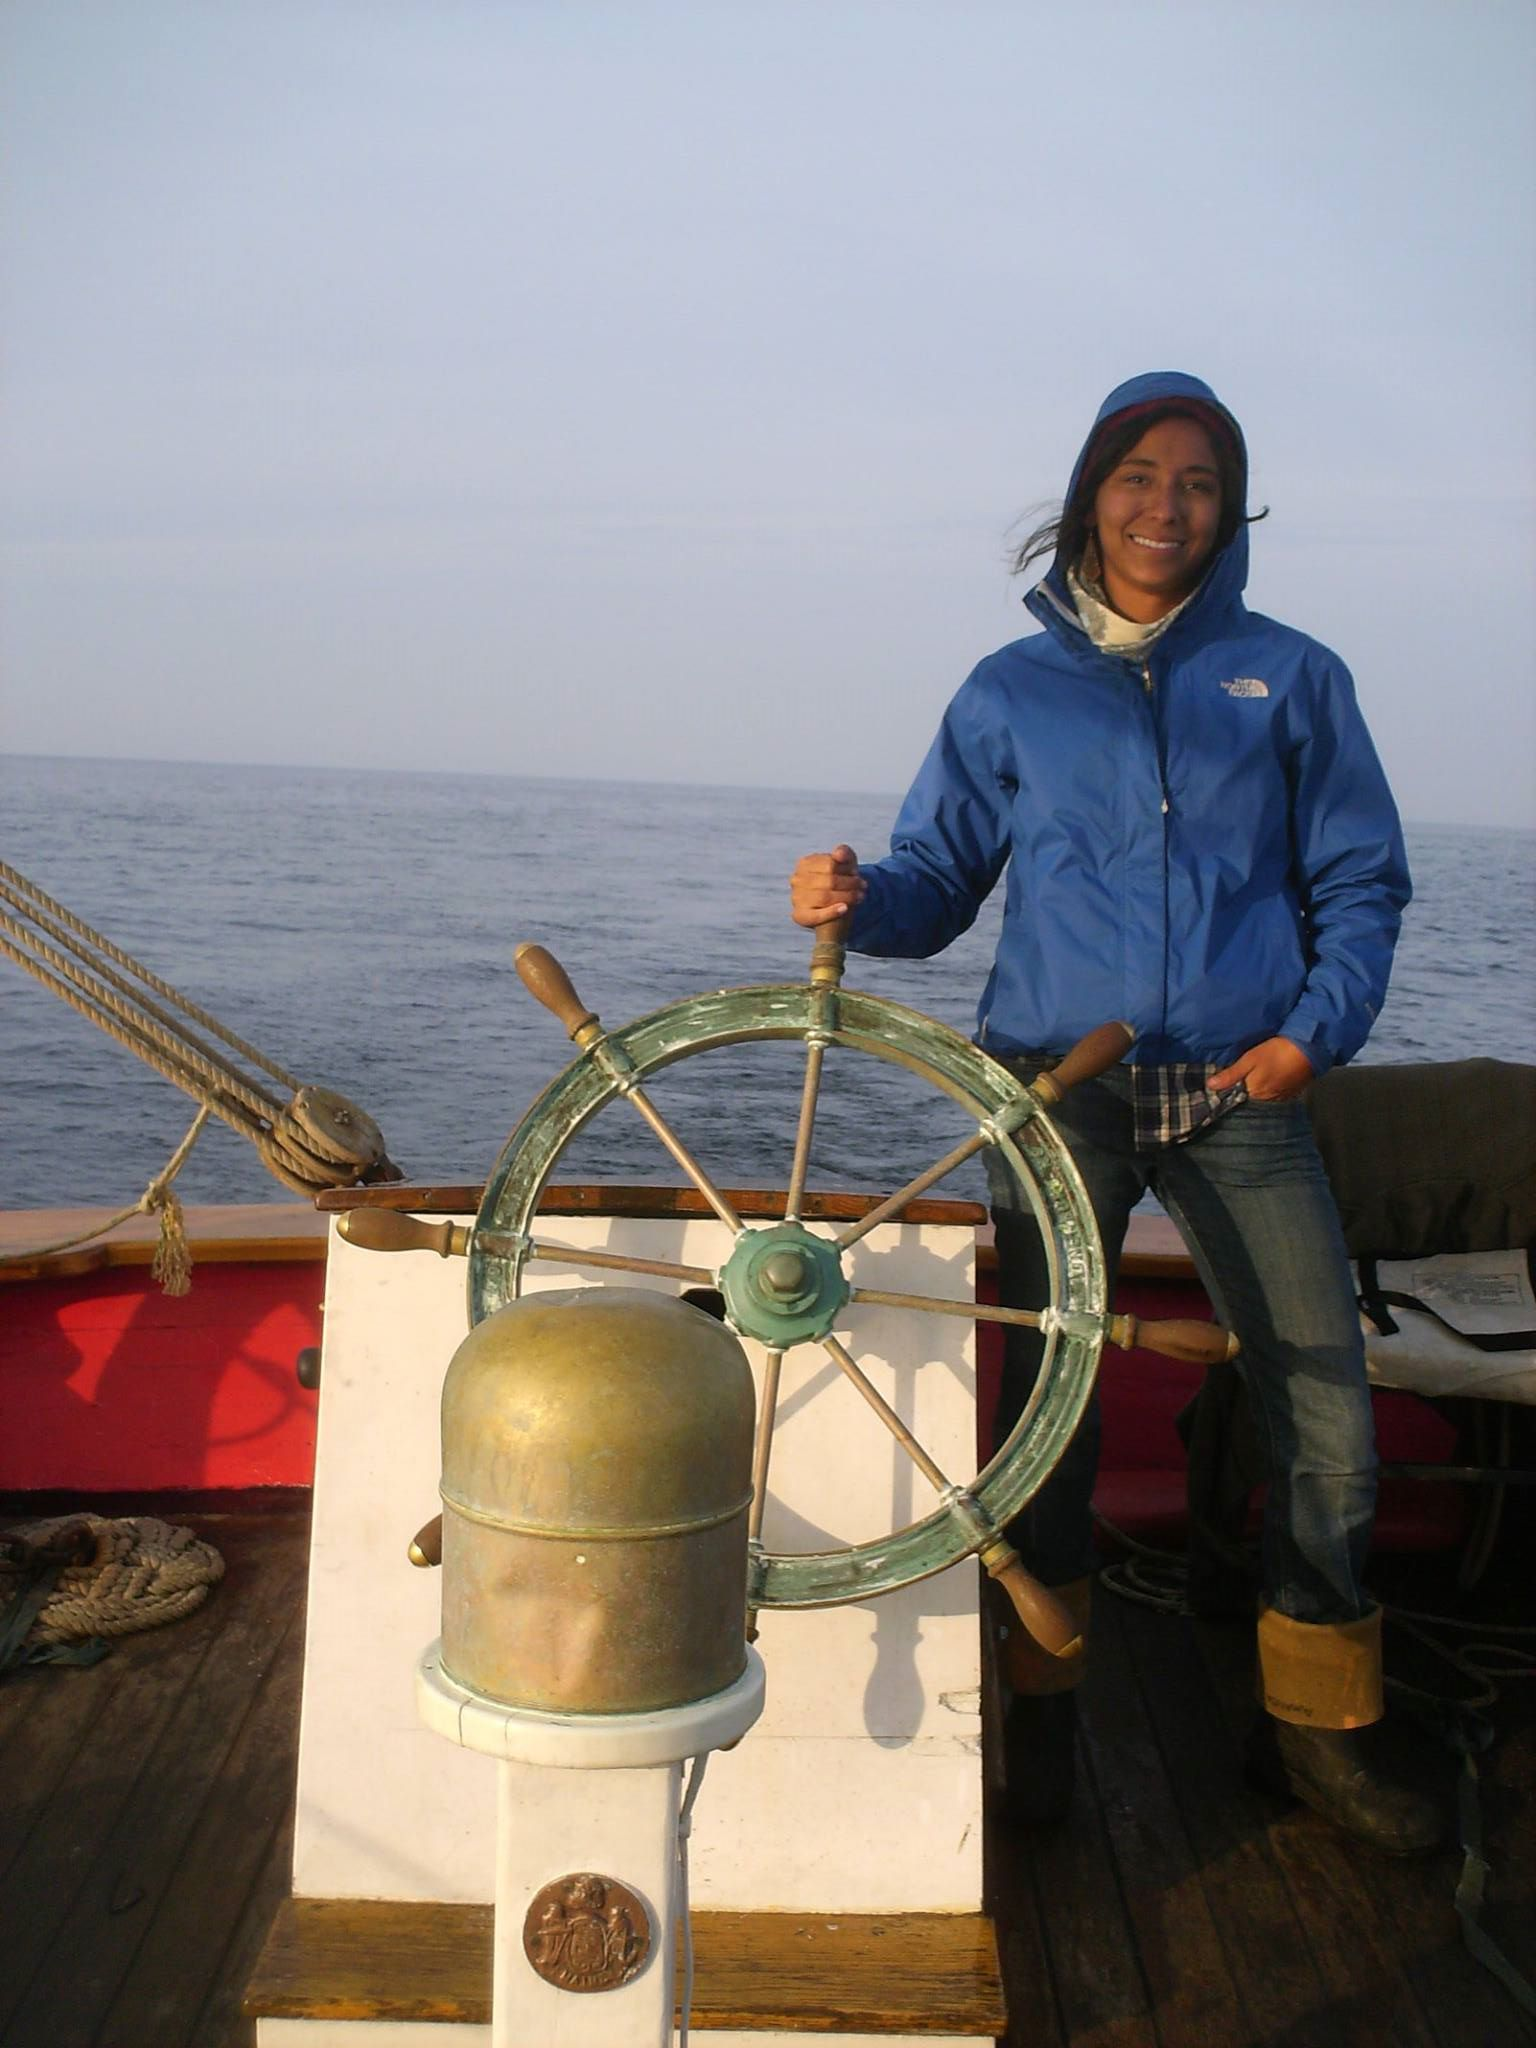 Sailing With NOAA... - The life of working on a schooner was exciting, but it wasn't the most profitable. Amanda then fell back on her Biology degree and began working with NOAA and the National Marine Fisheries Service as an At-Sea Monitor. This job demanded her to be at sea from 1-9 days aboard active ground fishing vessels monitoring the daily interactions of the fisherman with marine life. This included documenting, quantifying and speciating every organism that landed on deck of these fishing boats. This life was challenging but stimulating, glorifying the hard and humble life of fisherman and unveiling the creatures of the depths of the cold Northern Atlantic. In the 2 years she worked for NMFS she would see her fair share of whales, sharks, cod, guts & gulls.After living the irregular life of jumping boat to boat & port to port, Brooks decided to part with NMFS and went back to the laid-back days of sailing aboard both the schooner Appledore and as the First-mate of a new boat out of Kennebunkport, Maine,the Pineapple Ketch. She worked the summer away hauling lines and educating passengers of marine life and the art of sailing. Amanda then weighed her options, she could follow the Appledore south to the heat of the Keys once again or she could find something new that kept her in the cold and snow (the latter was what she preferred). She made one last Southbound delivery aboard the Appledore, then flew back to embark on her new adventure, the art of Dog Mushing.